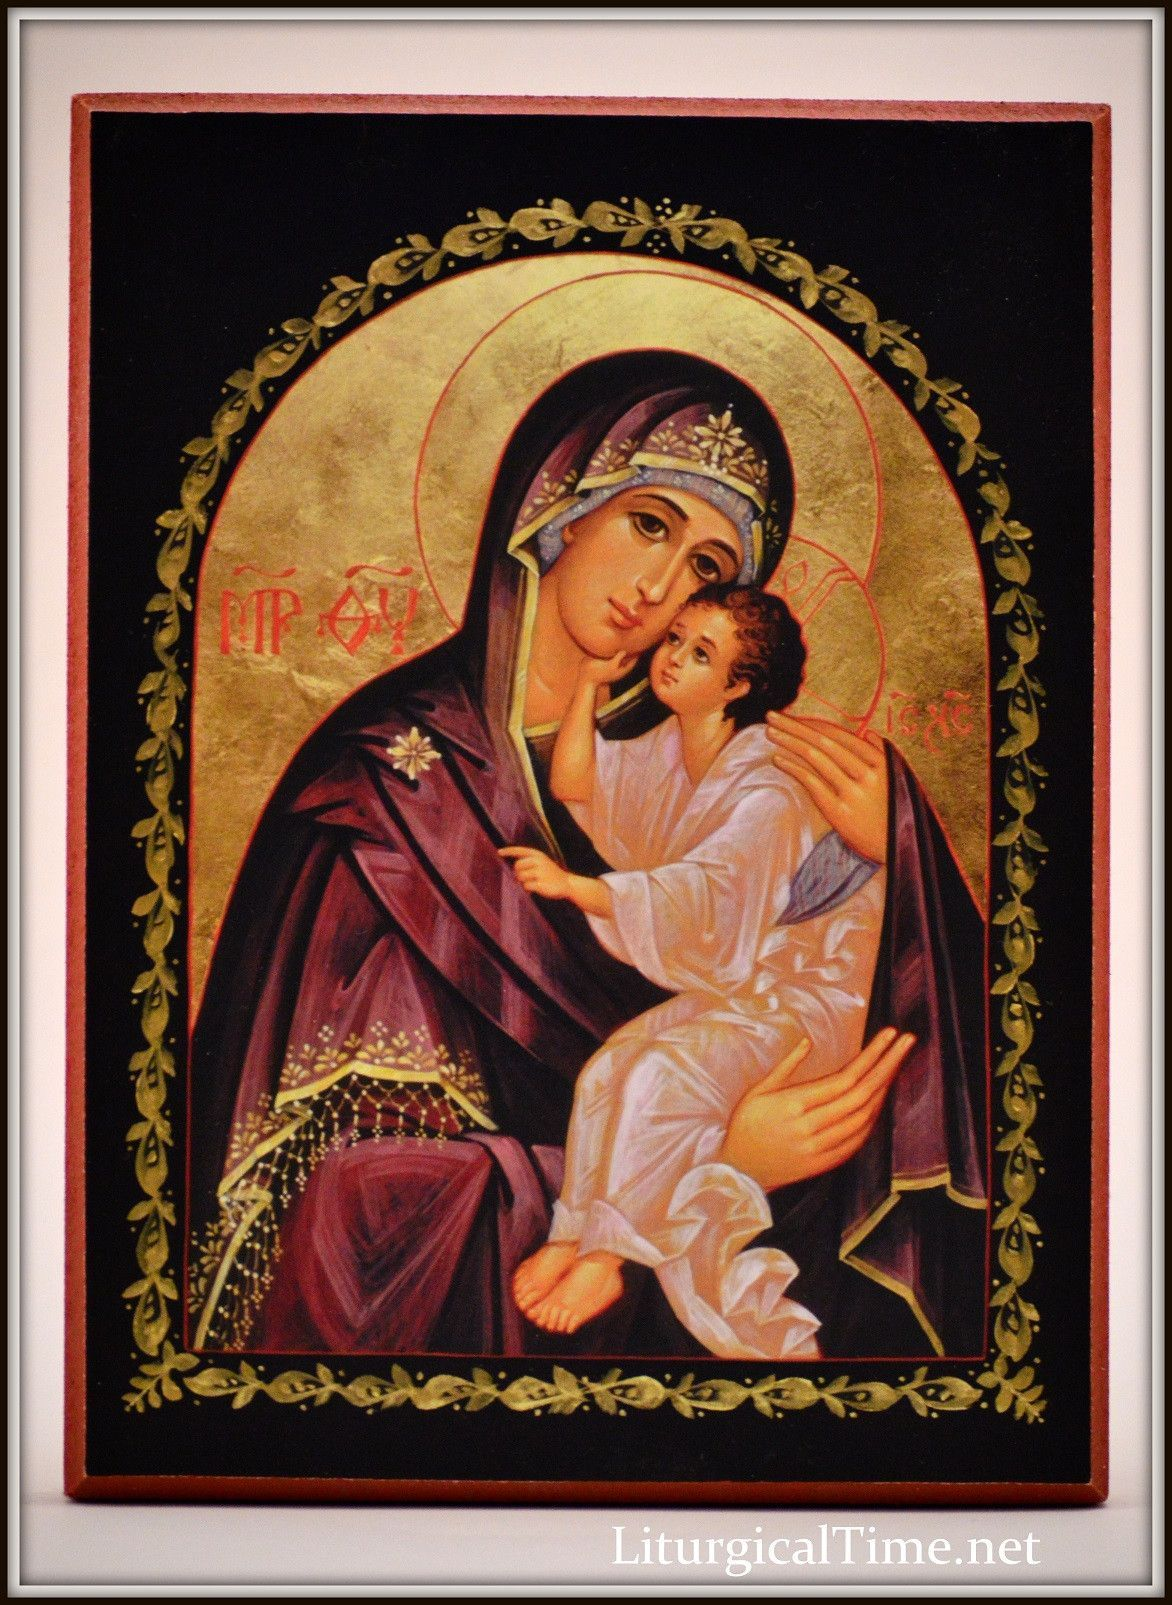 Gracious Sky, the icon of the Blessed Virgin Mary: description, history, meaning, prayers 100